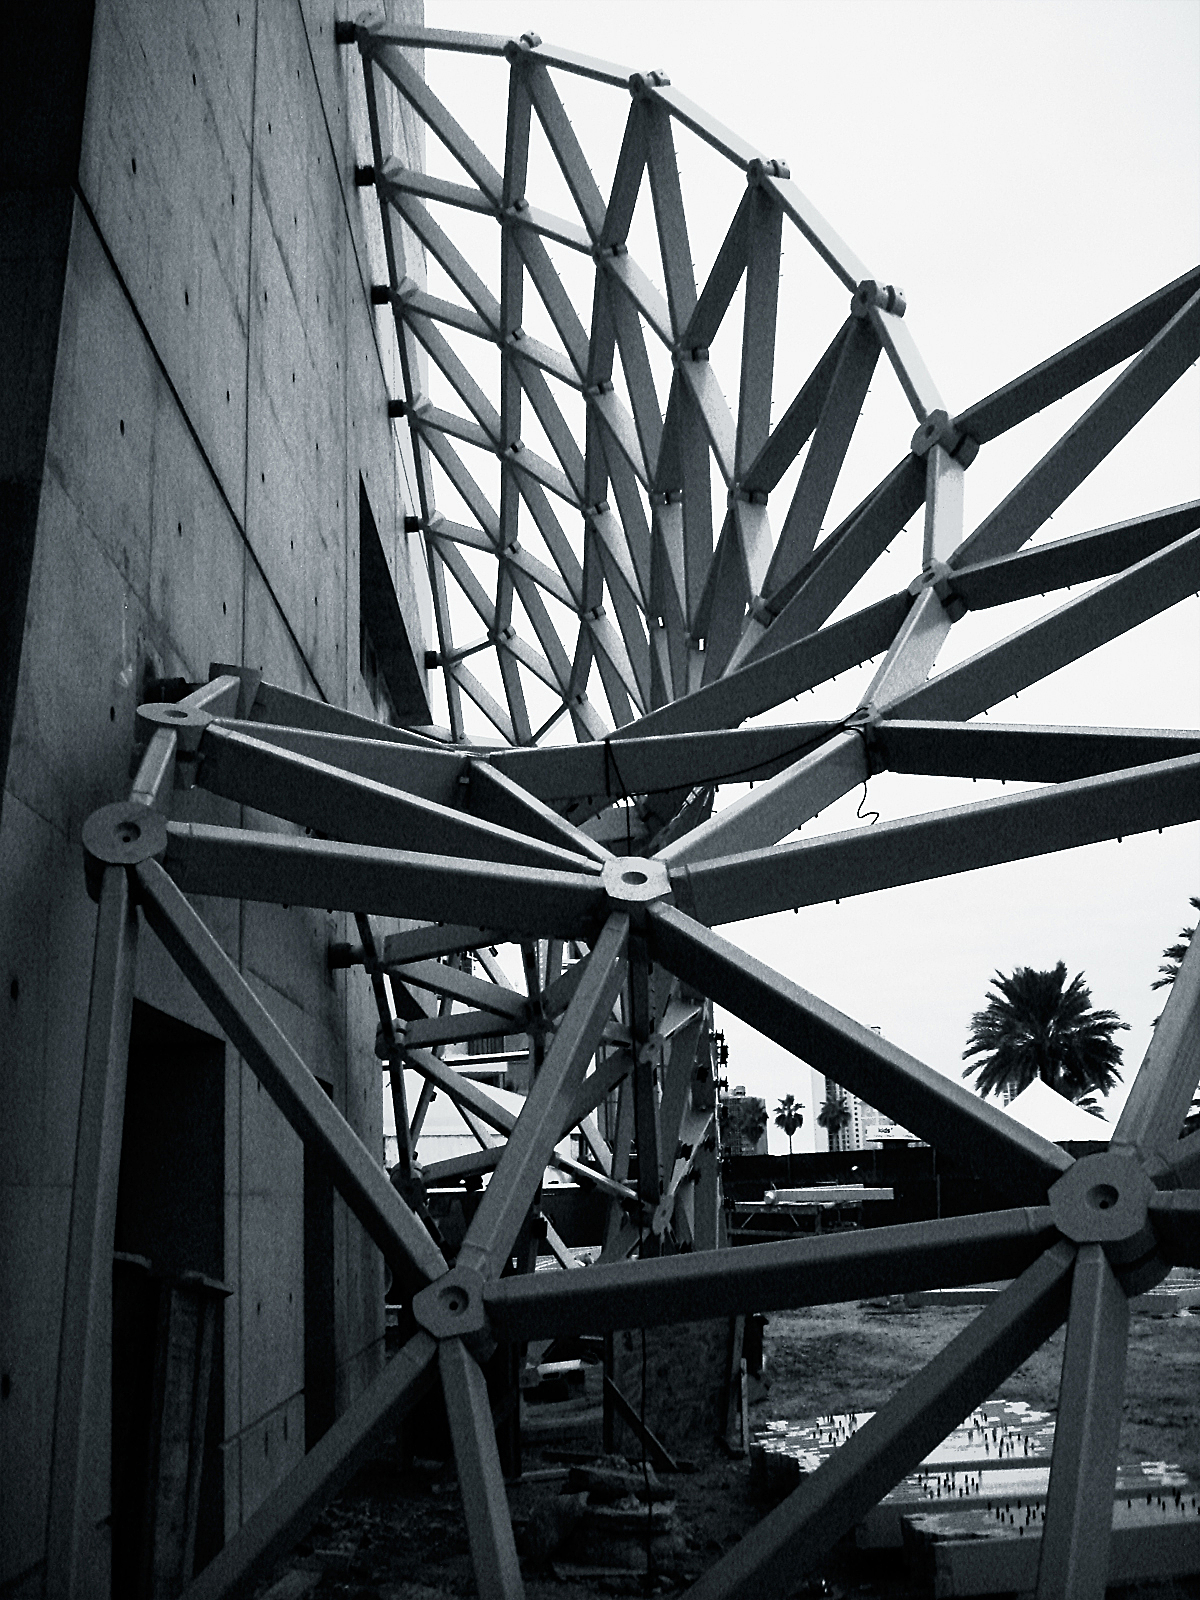 Novum structure under construction